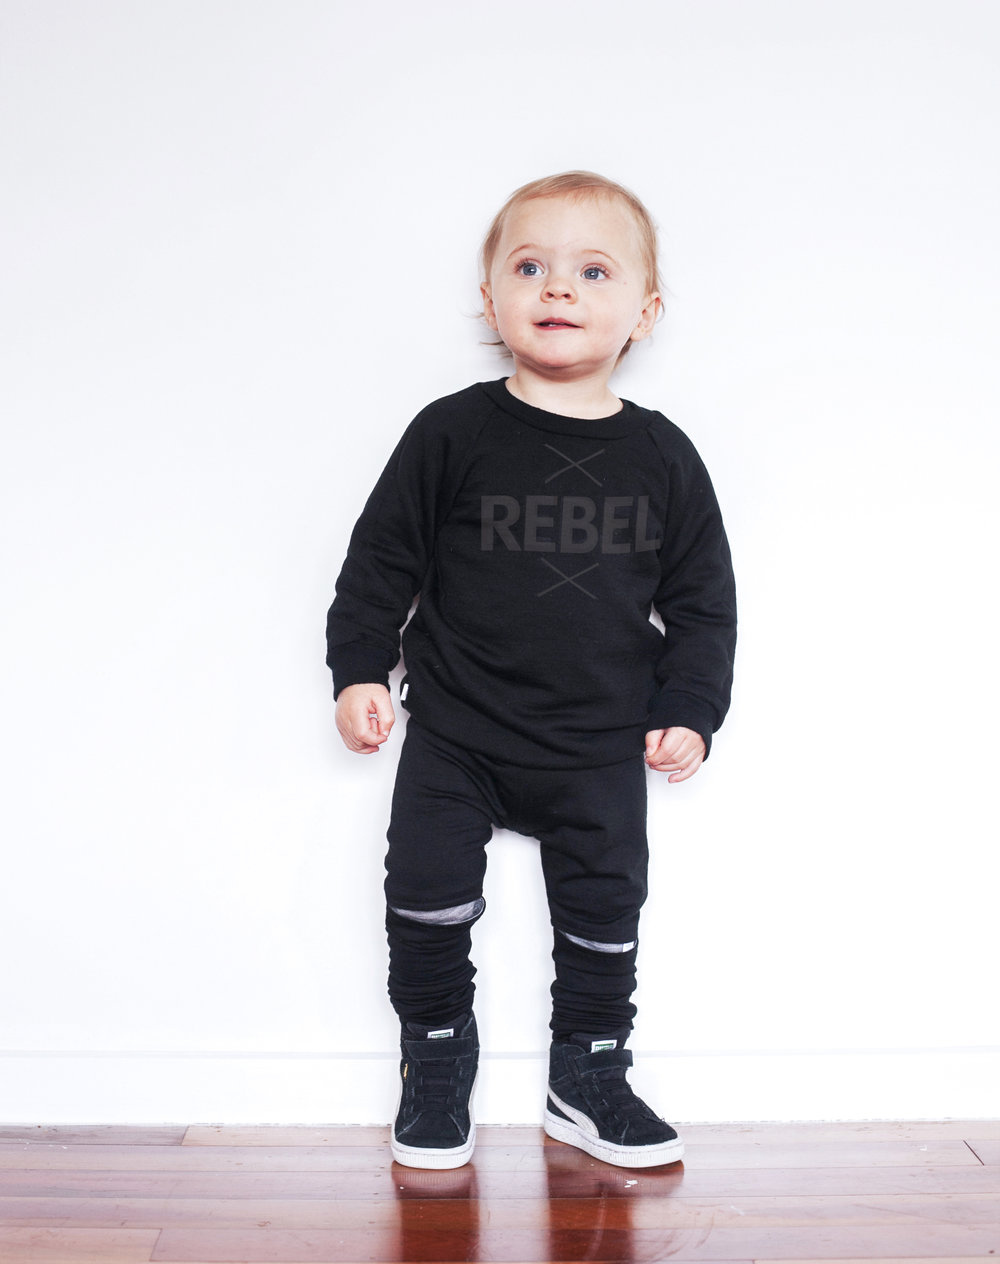 1217_Nuggets_Rebel_Crew_Sweatshirt_Midnight_GreyMarleLS-edited copy